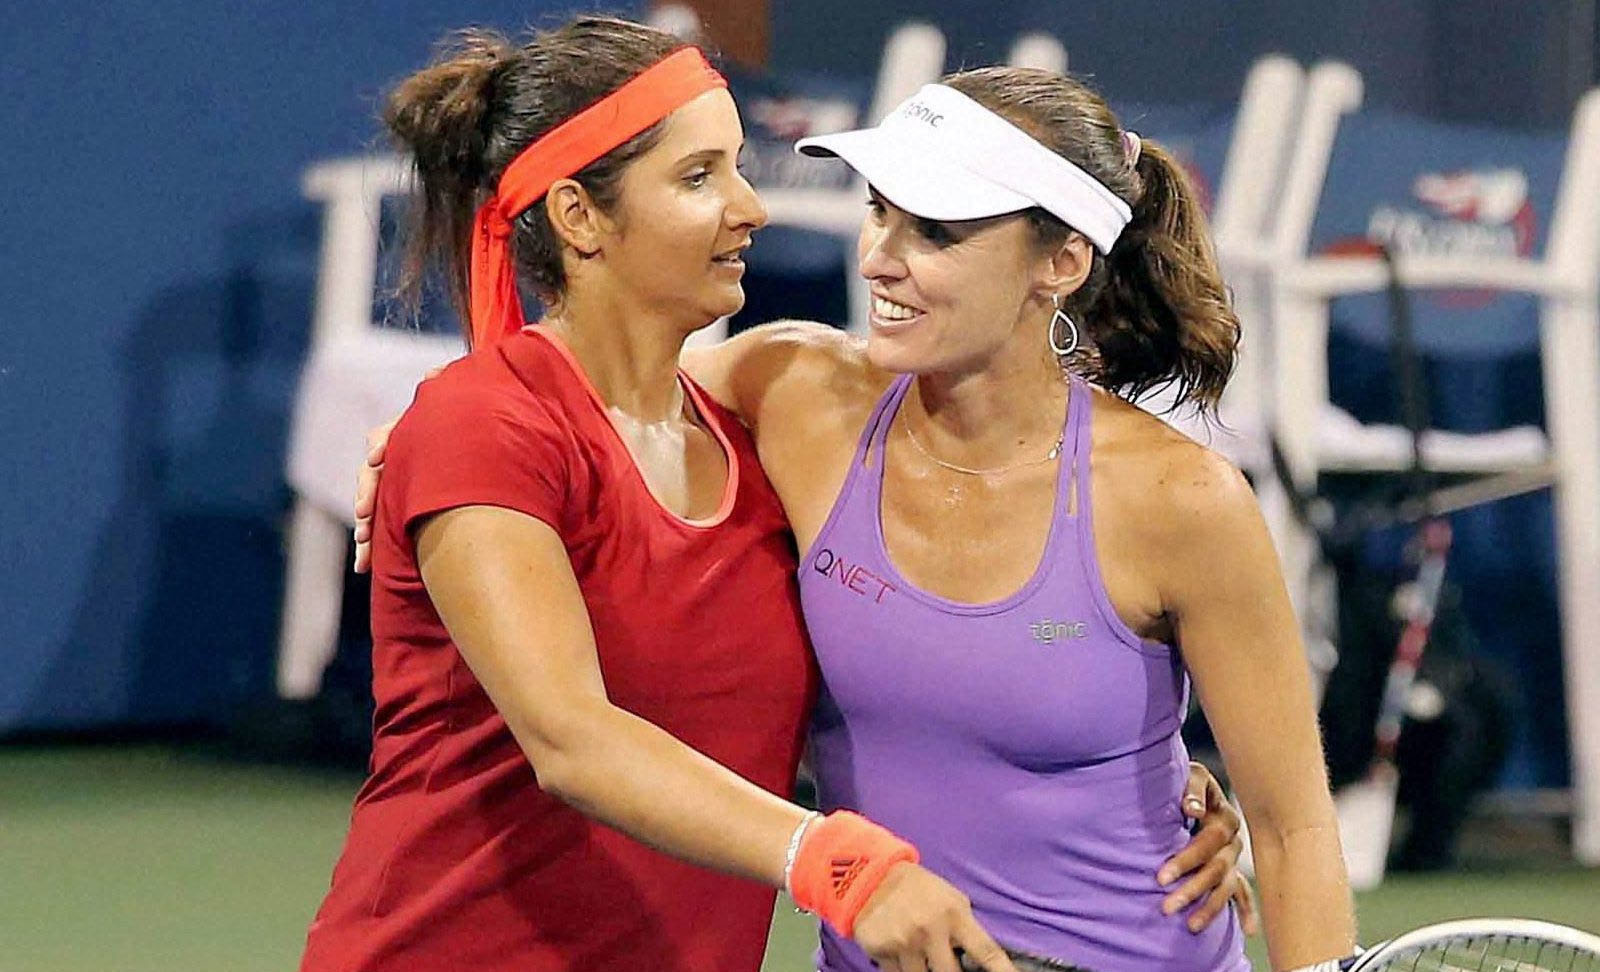 Sania, Hingis enter into Doha quarters with an unbeaten winning streak of 41 matches